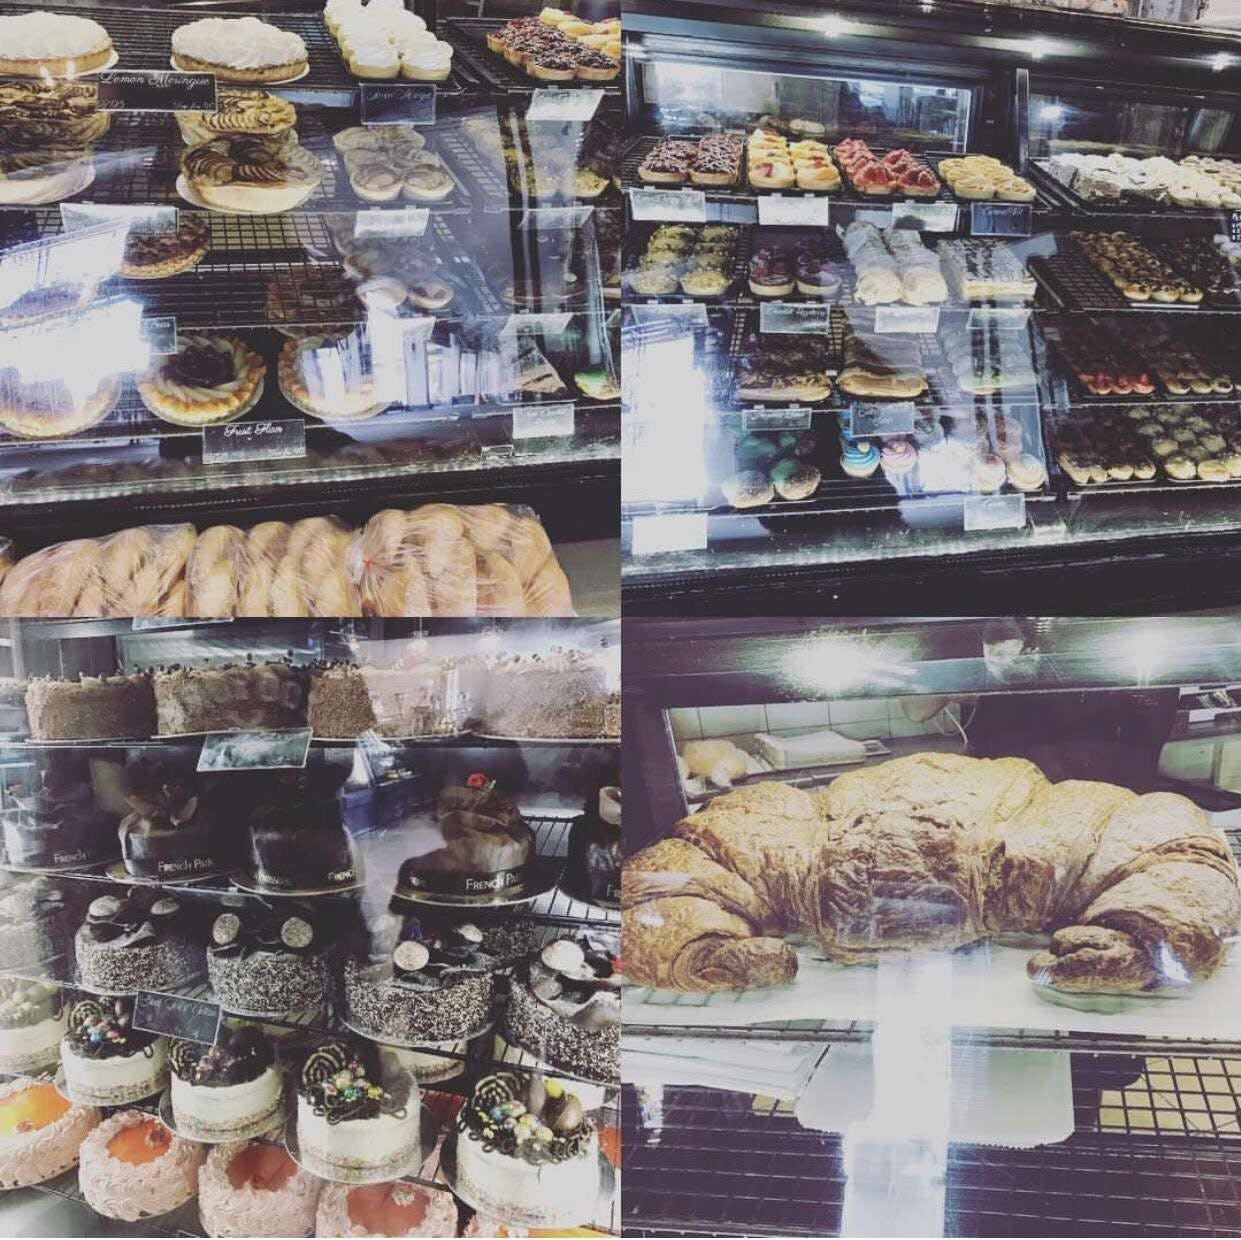 French Patisserie - Food Delivery Shop